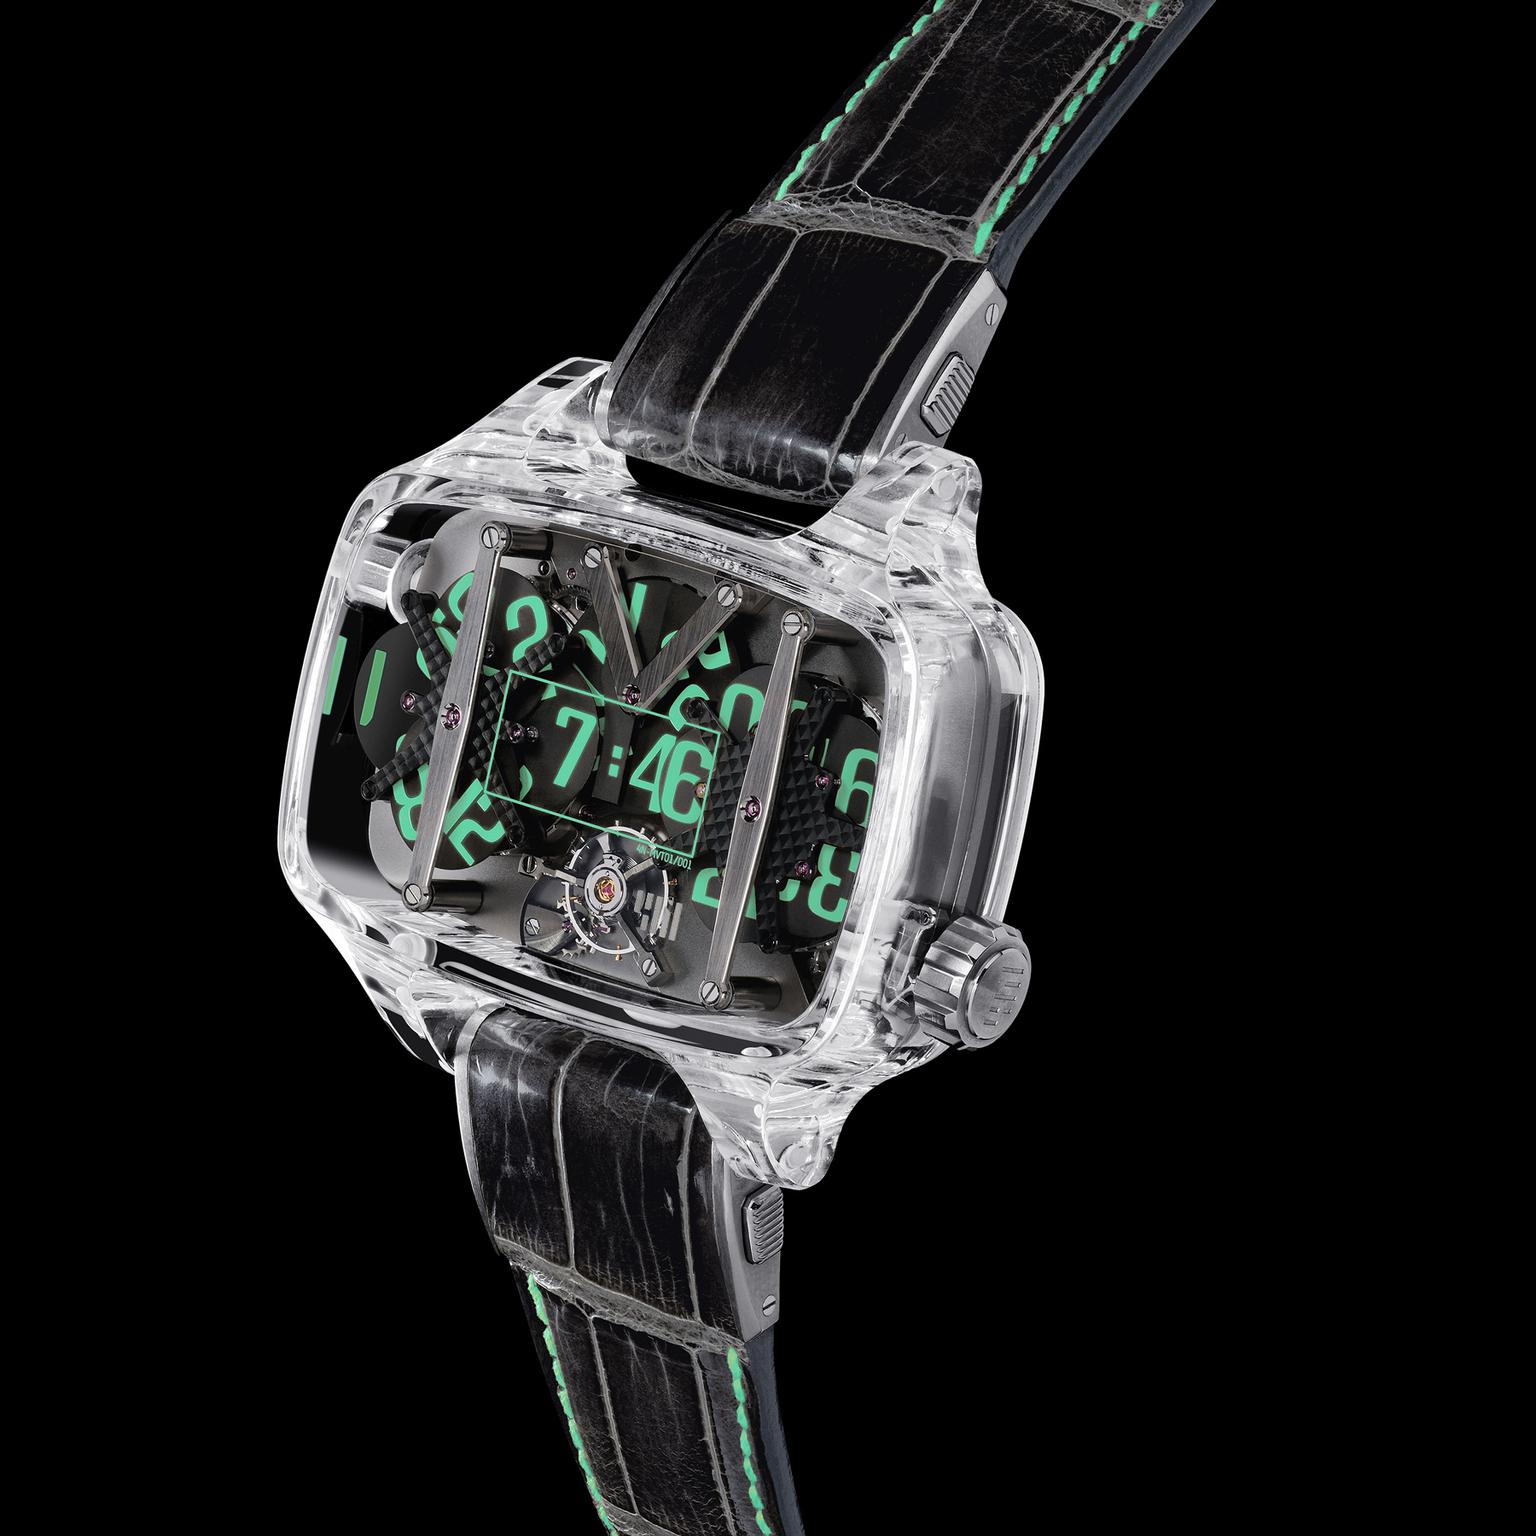 4N Sapphire Planet watch